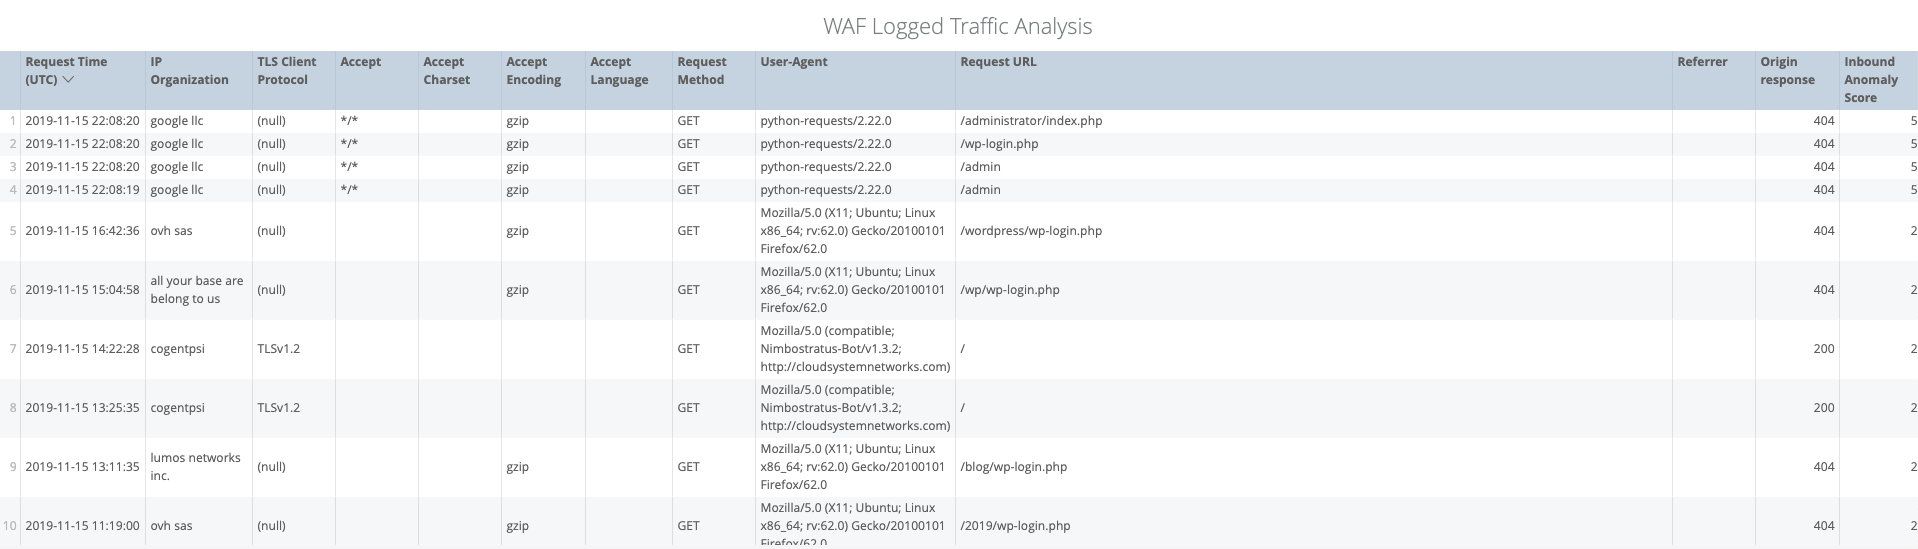 WAF Logged Traffic Analysis